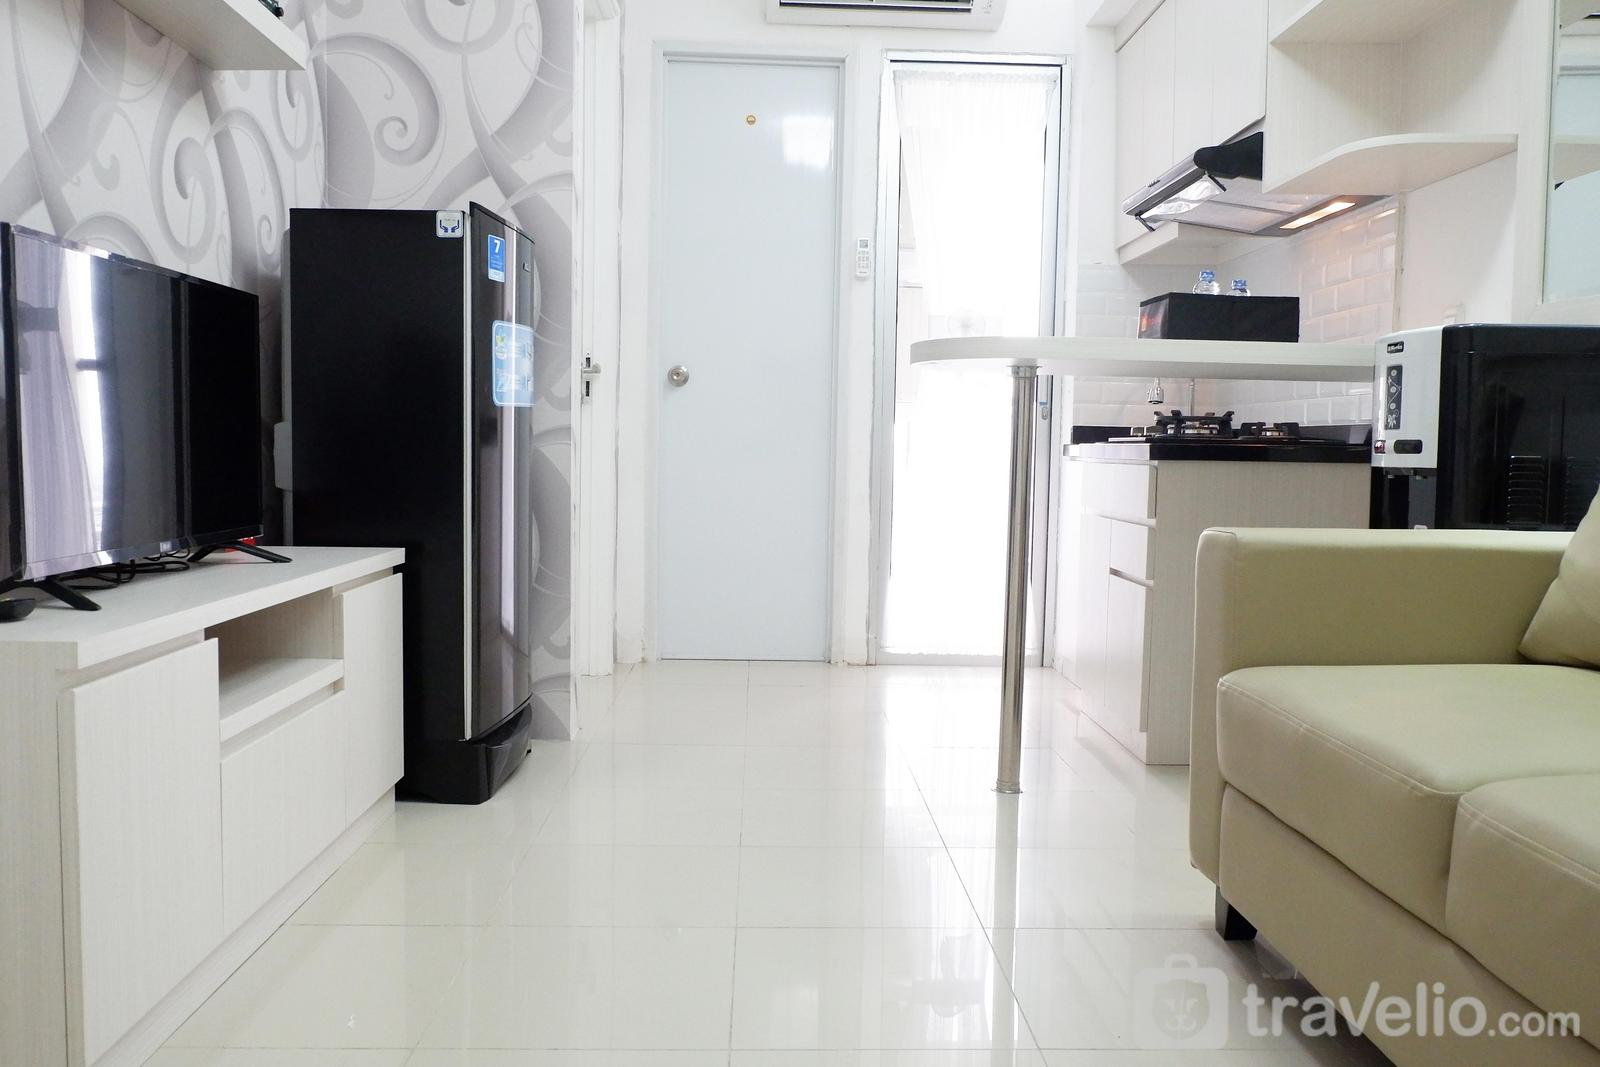 Bassura City Cipinang - Exquisite 2BR Bassura City Apartment near Shopping Mall By Travelio